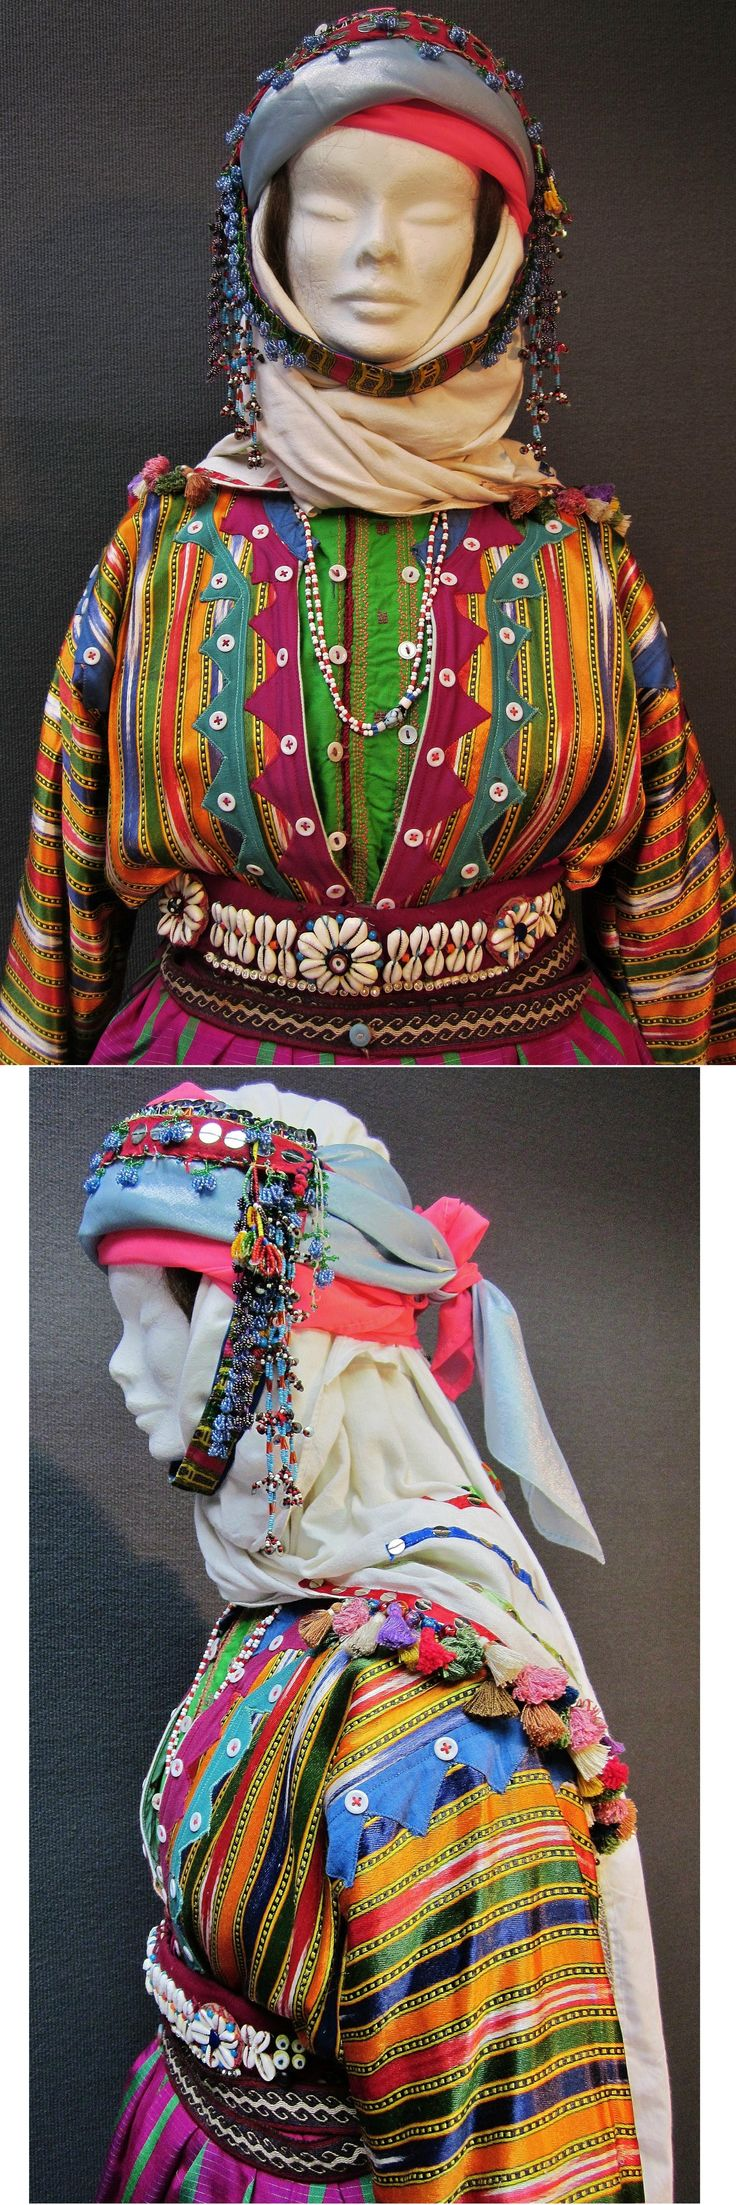 Close-ups of a traditional festive costume of the Üsküdarlı Tahtacı, from the Bergama region.  Clothing style: ca. 1970. The Tahtacı are Alevi Türkmen. This costume is similar to those of nearby Kozan Yaylası, but it is simpler, and with beadwork ornaments instead of silver jewelry. (Kavak Costume Collection - Antwerpen/Belgium).